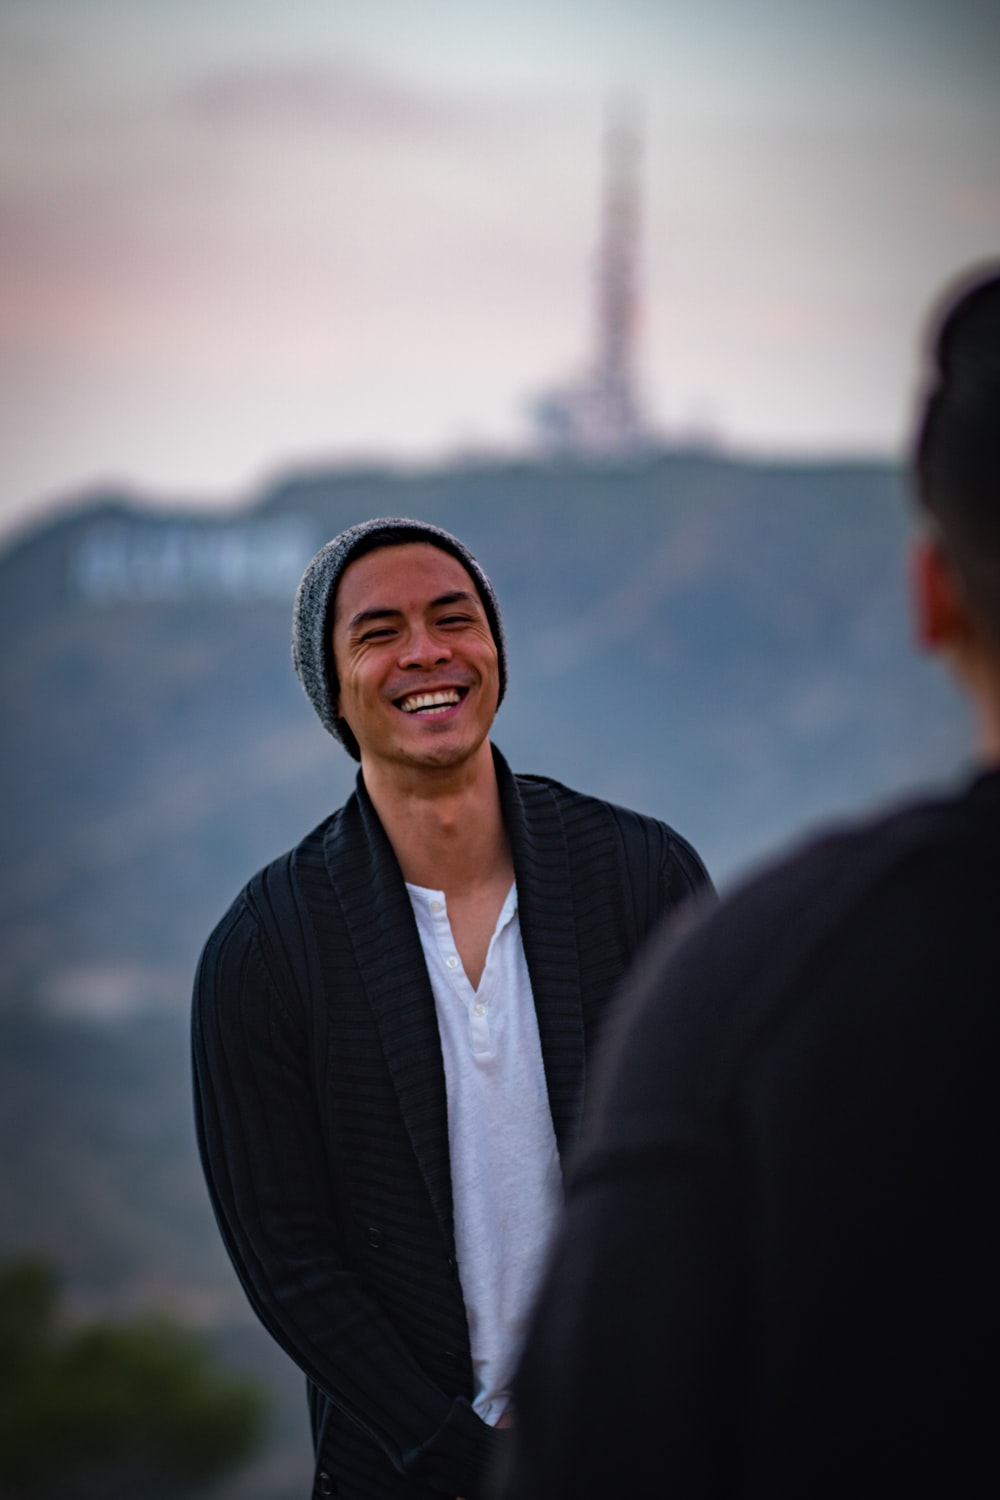 man smiling while facing other person